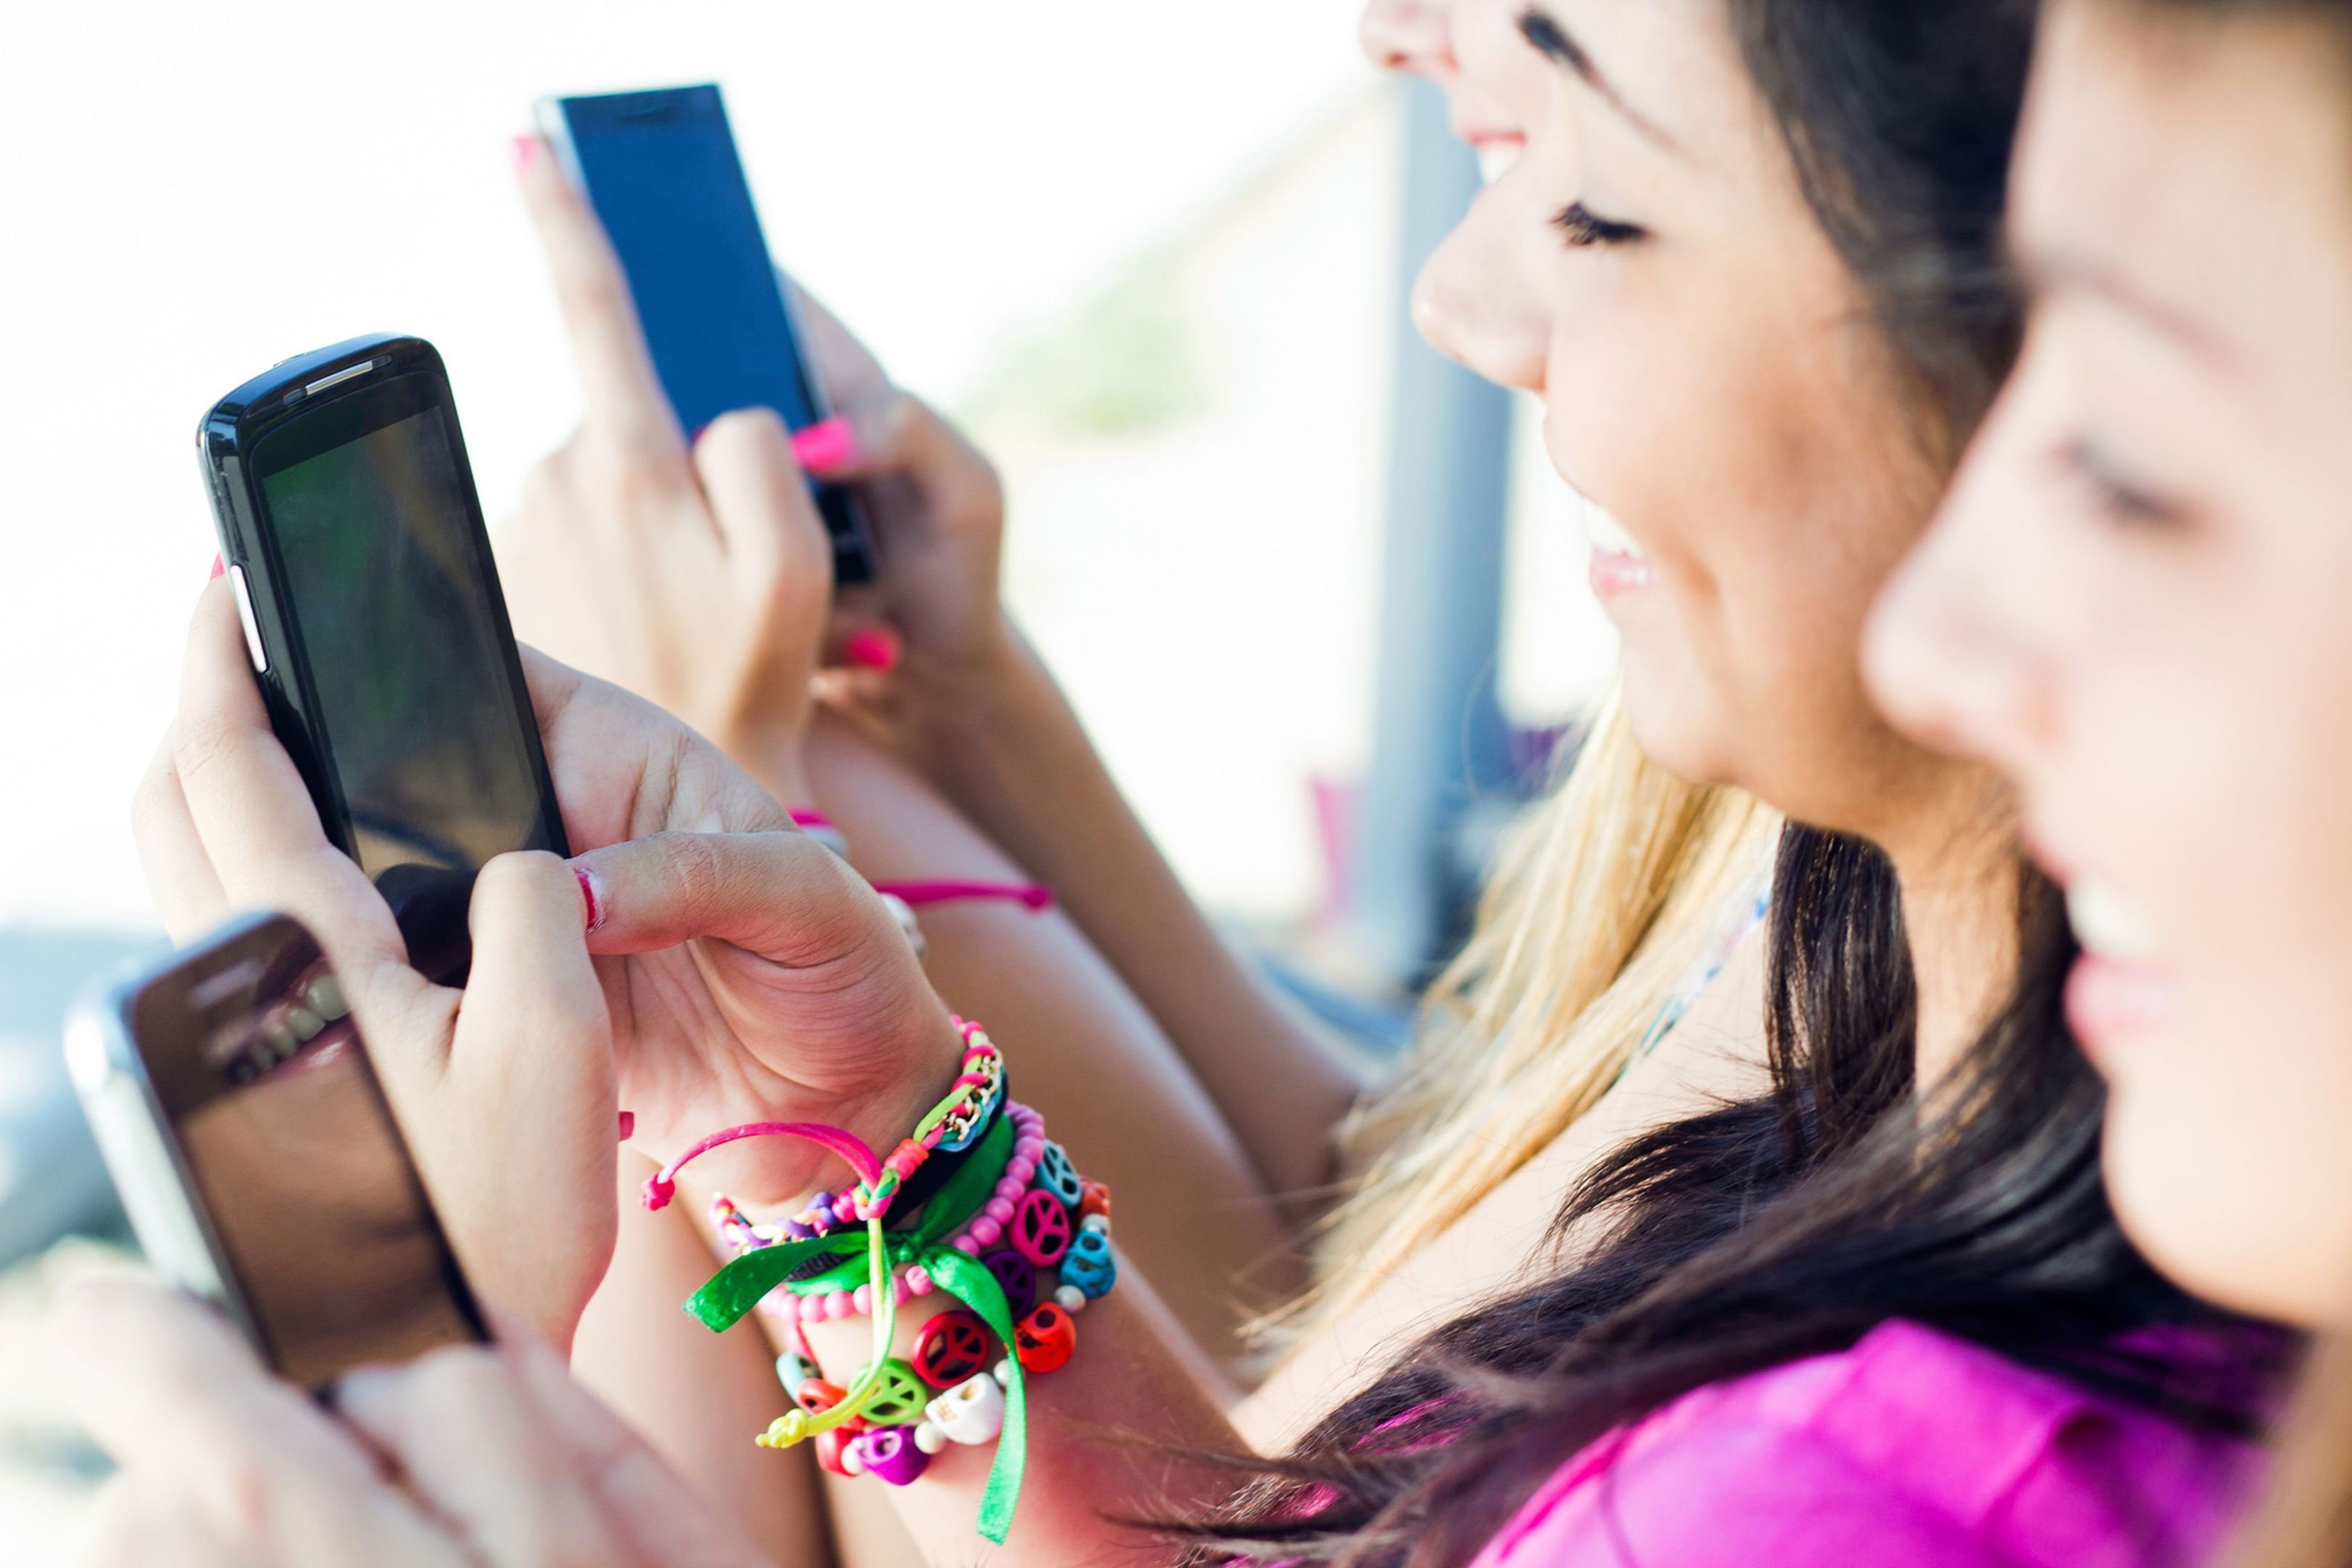 Girls with their smartphones in action. There's a time and a place, argues Craig Smith.